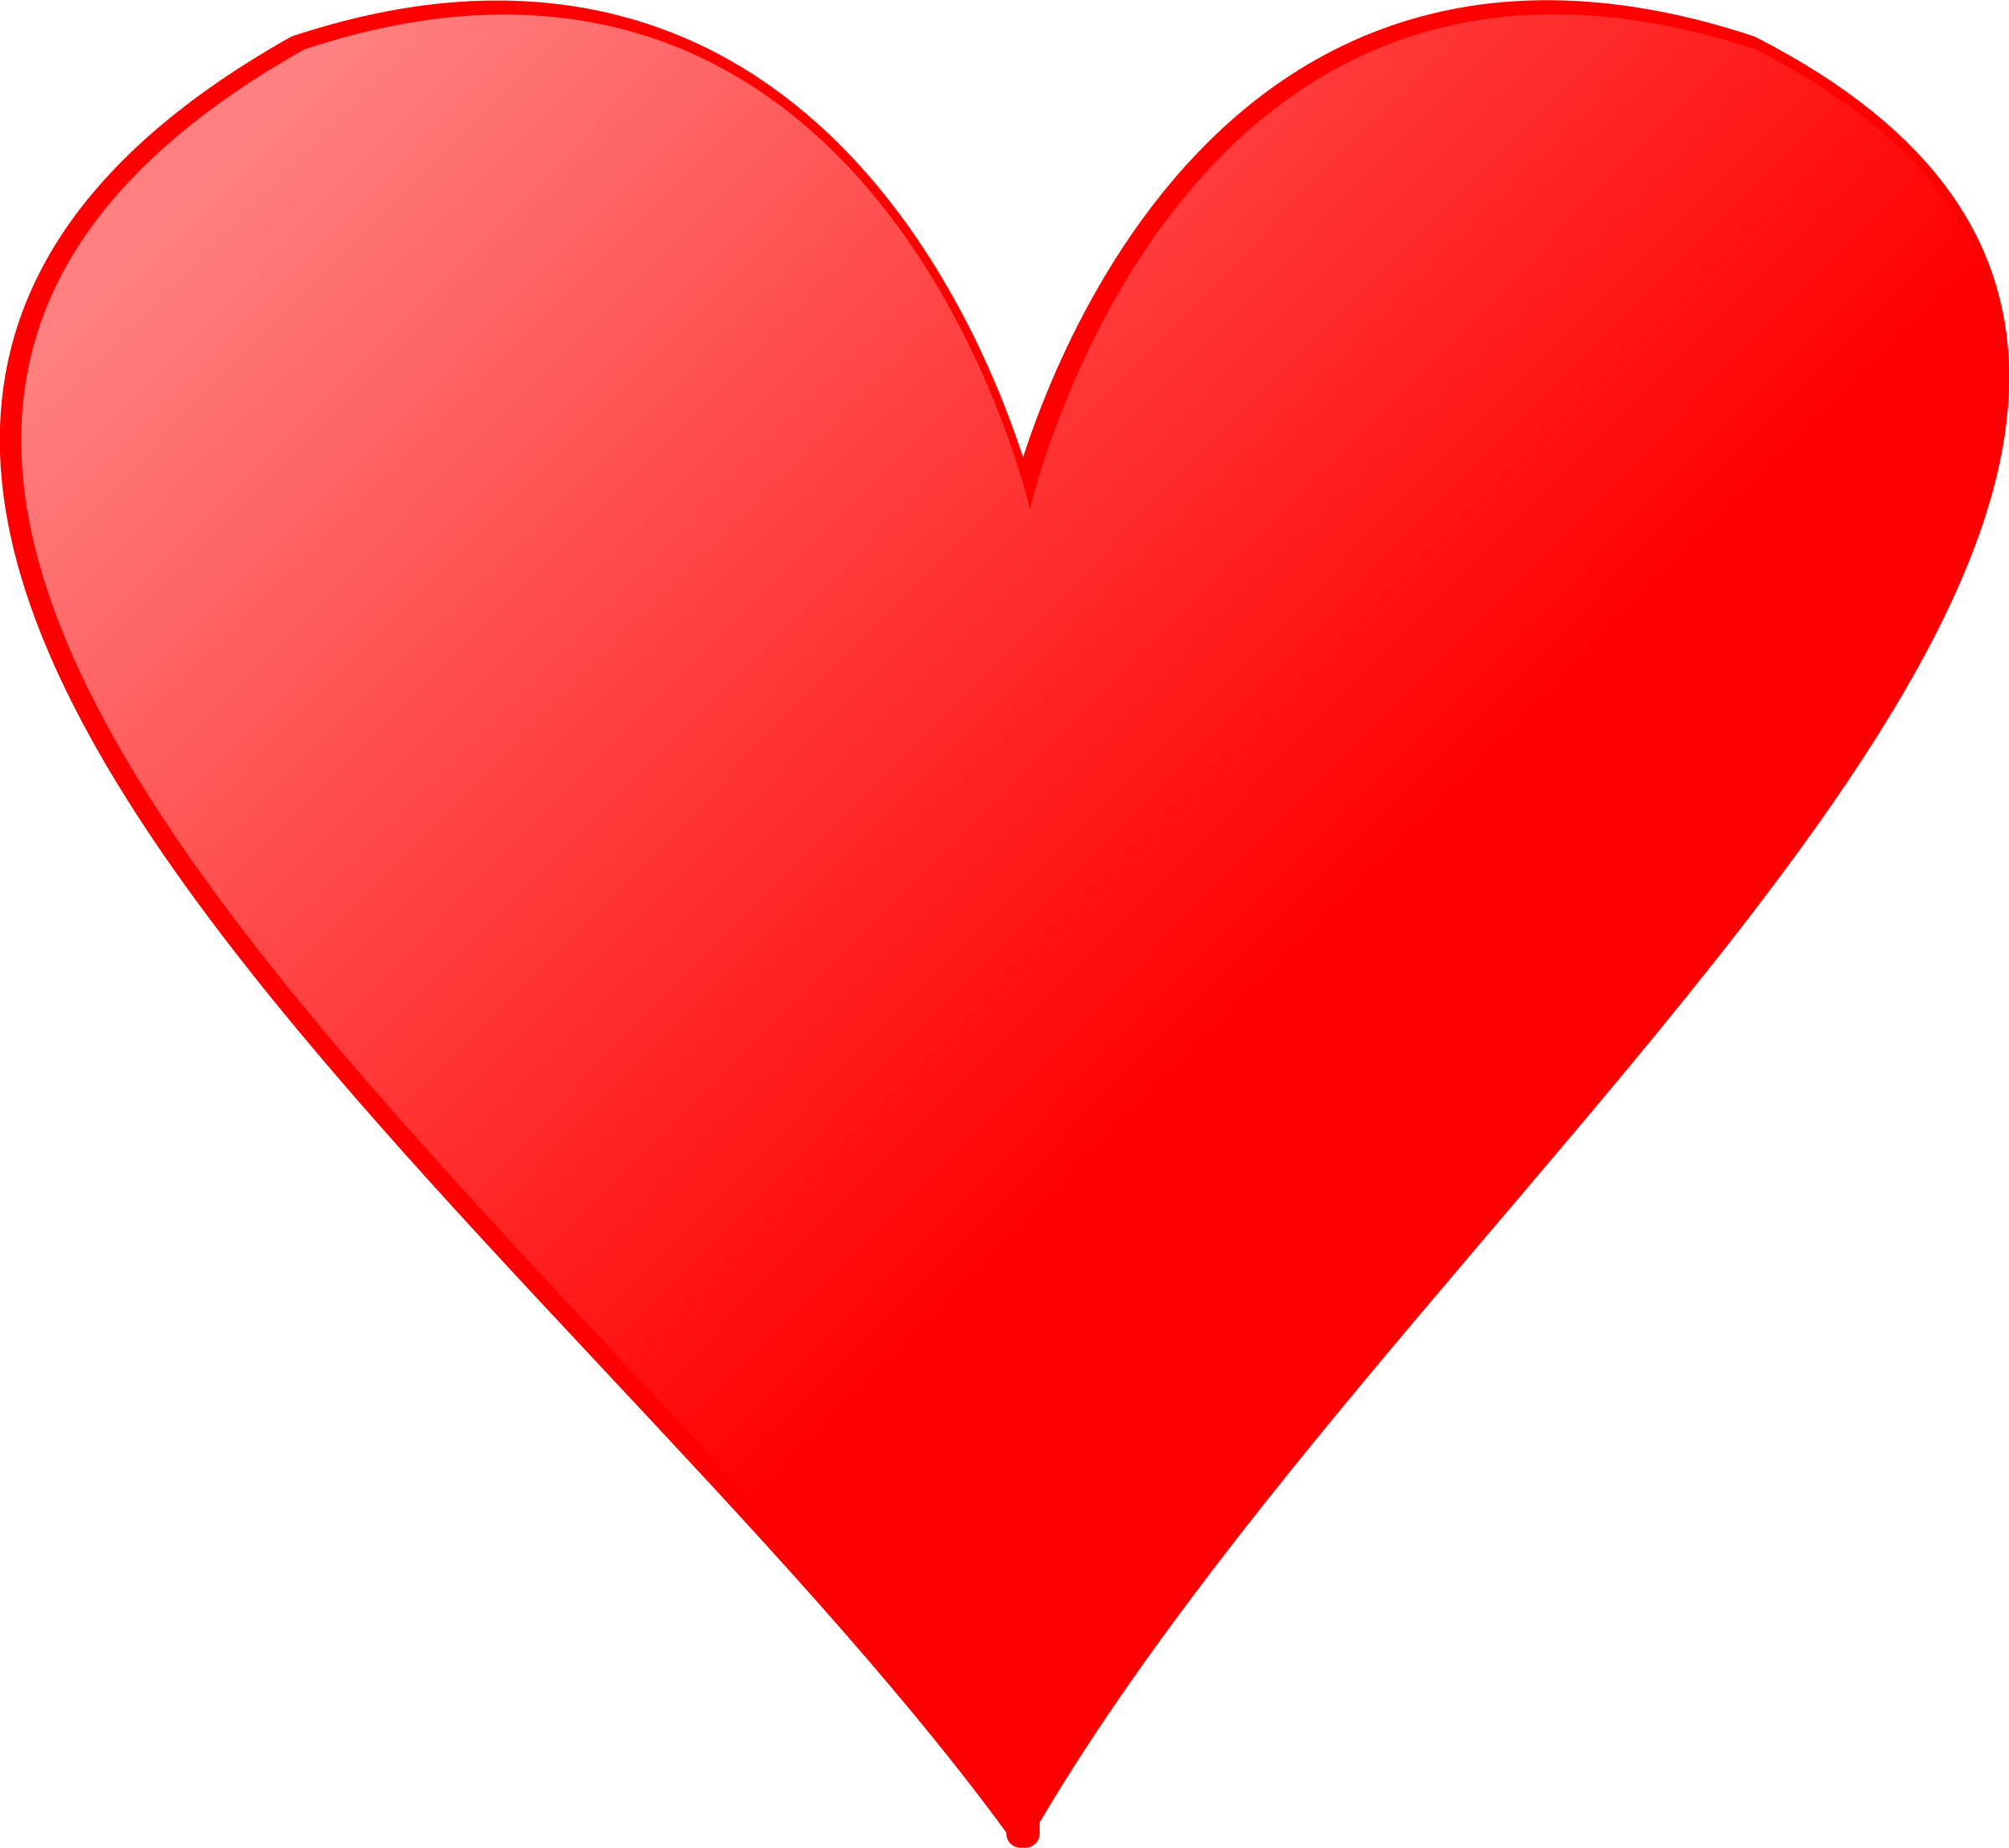 Heart icon png. Card symbols icons free